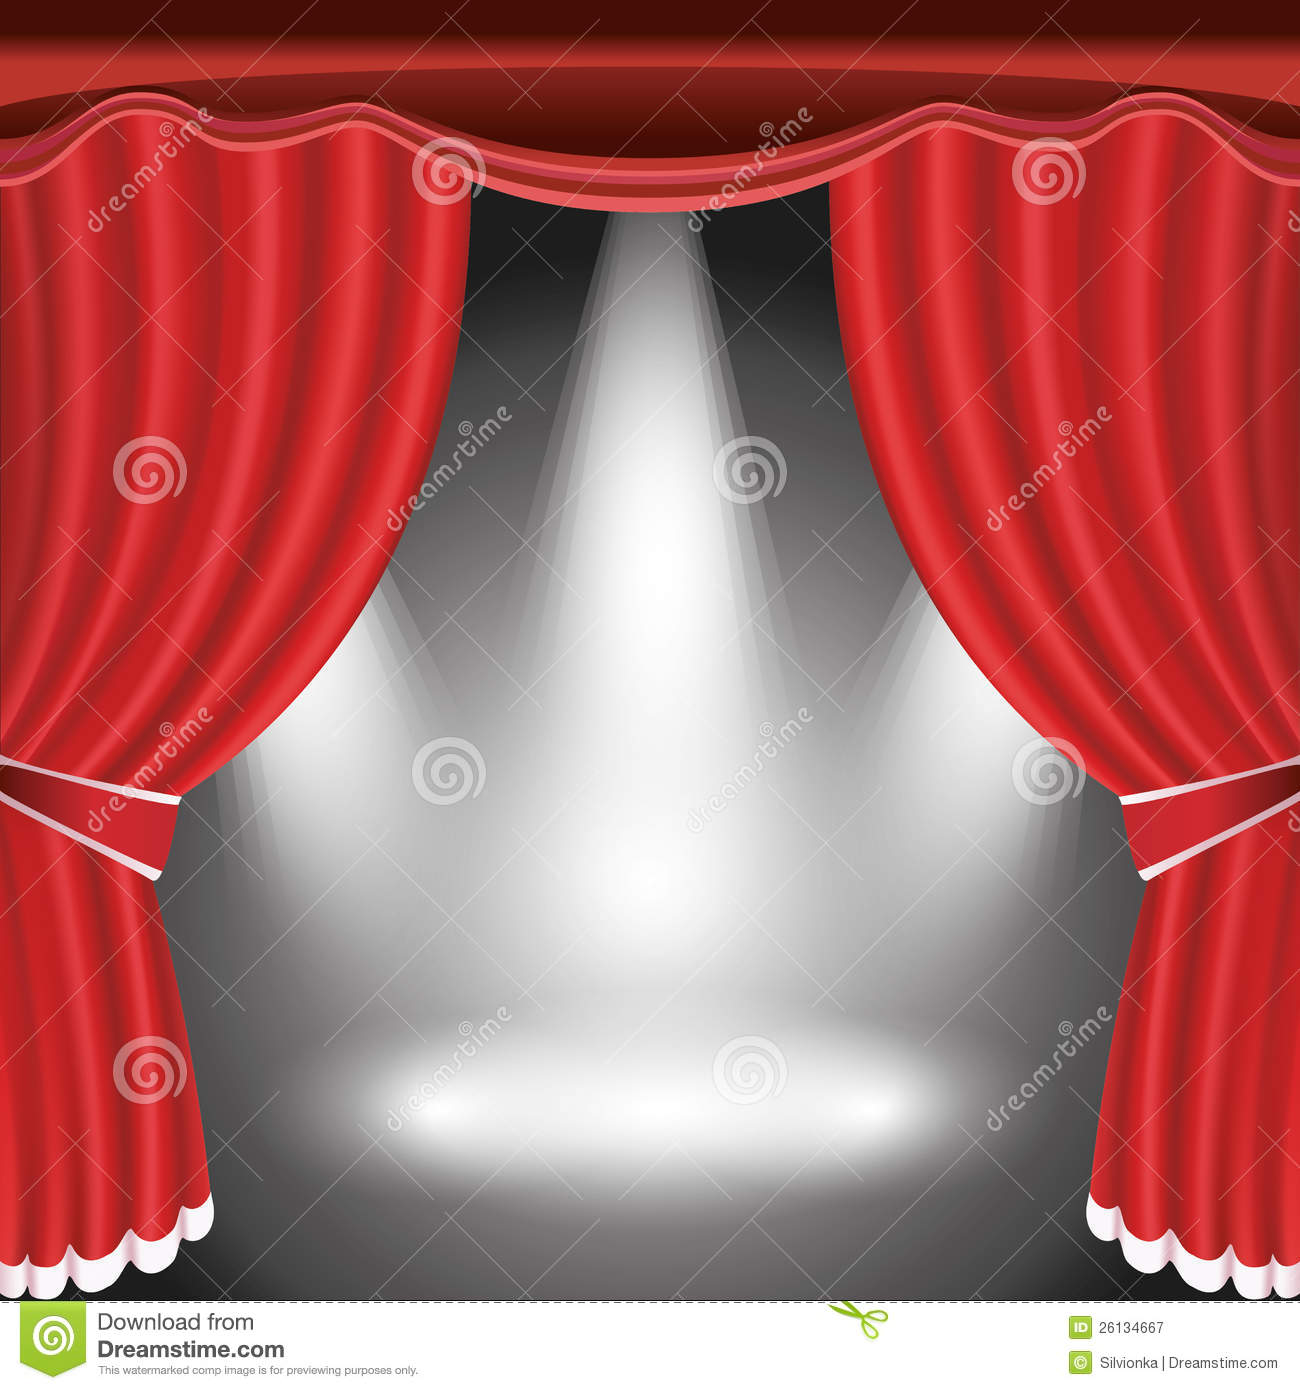 Stage curtains spotlight - Theater Stage With Open Red Curtain And Spotlight Royalty Free Stock Photography